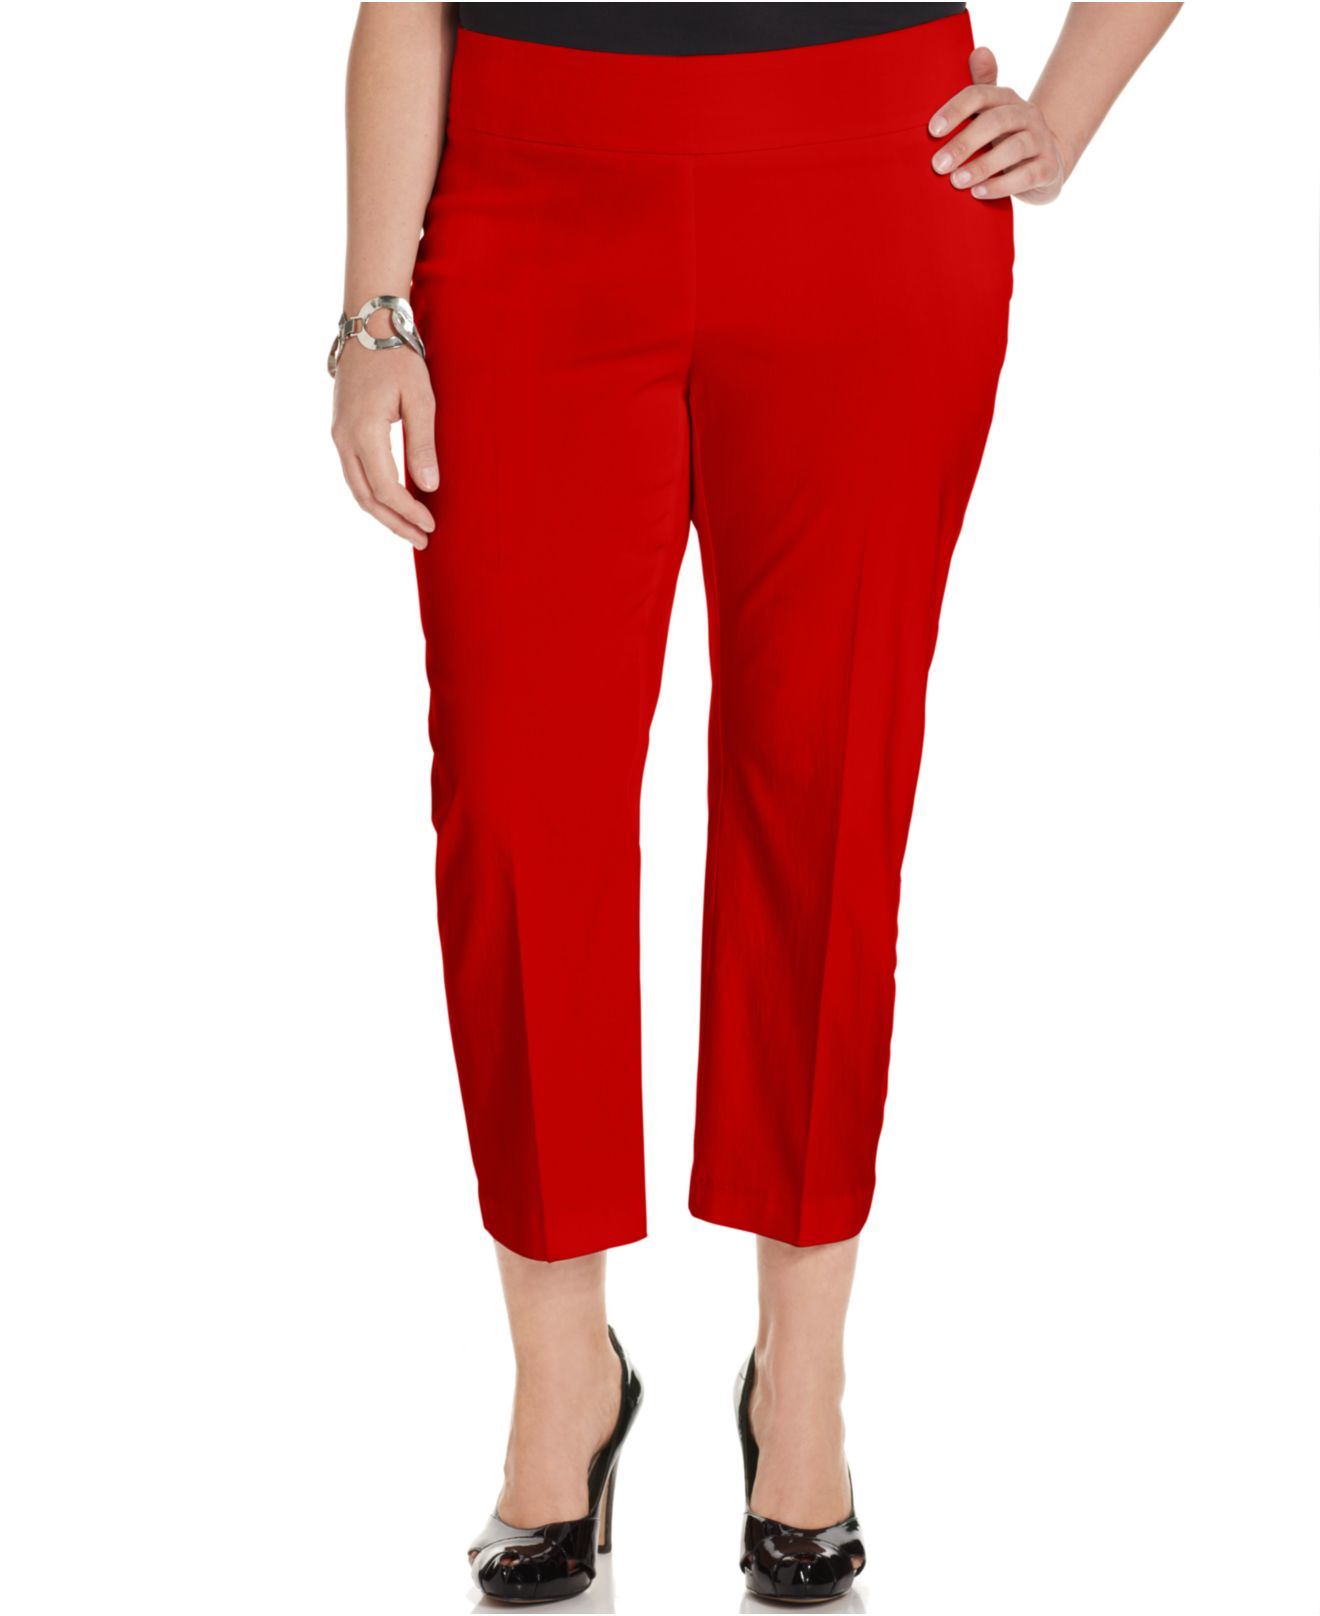 Alfani Plus Size Pull-on Capri Pants in Red | Lyst